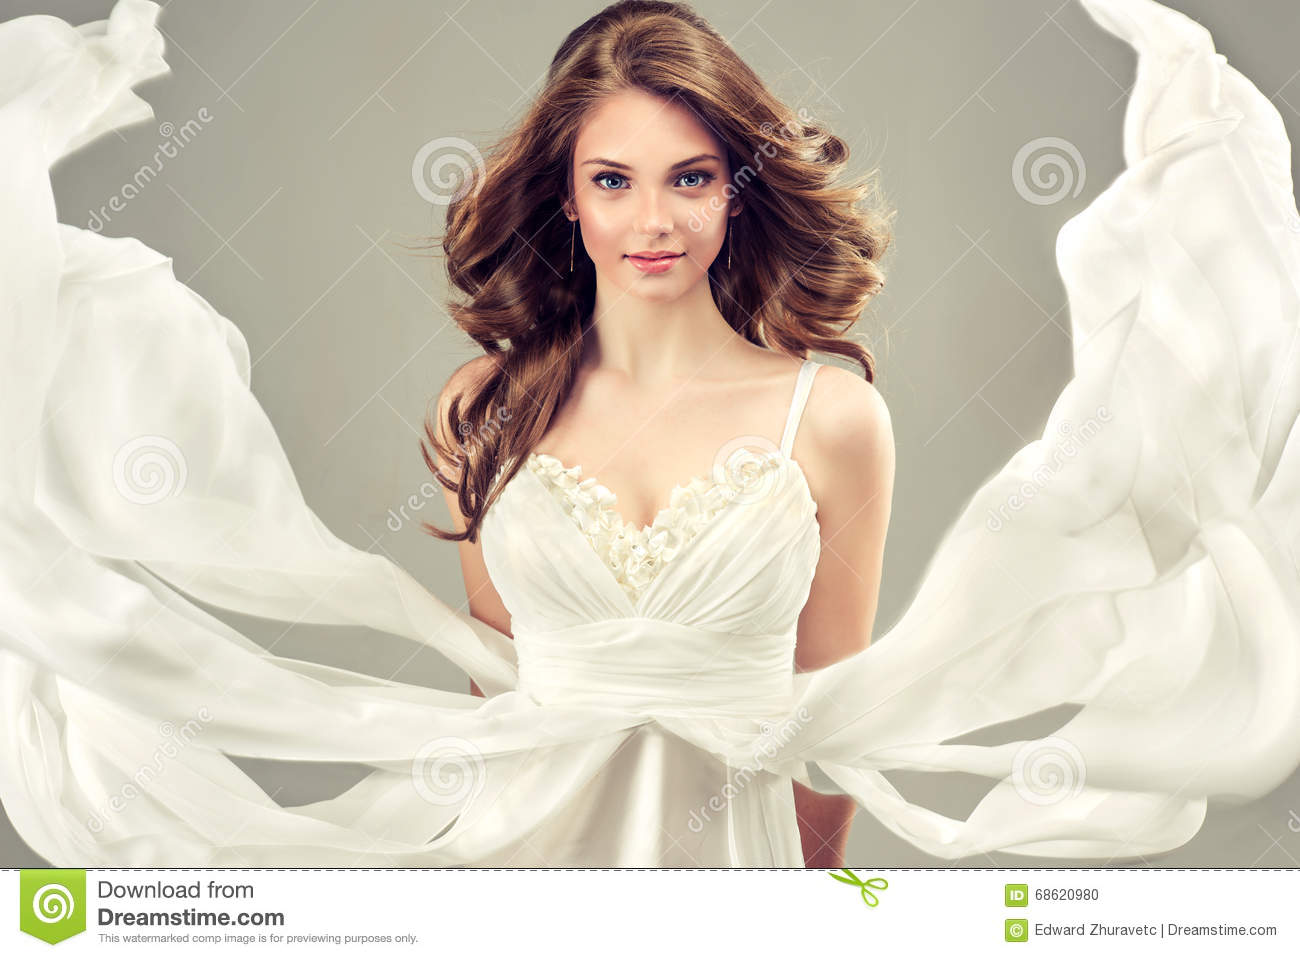 Girl Model In A White Wedding Dress. Stock Photo - Image of elegant ...